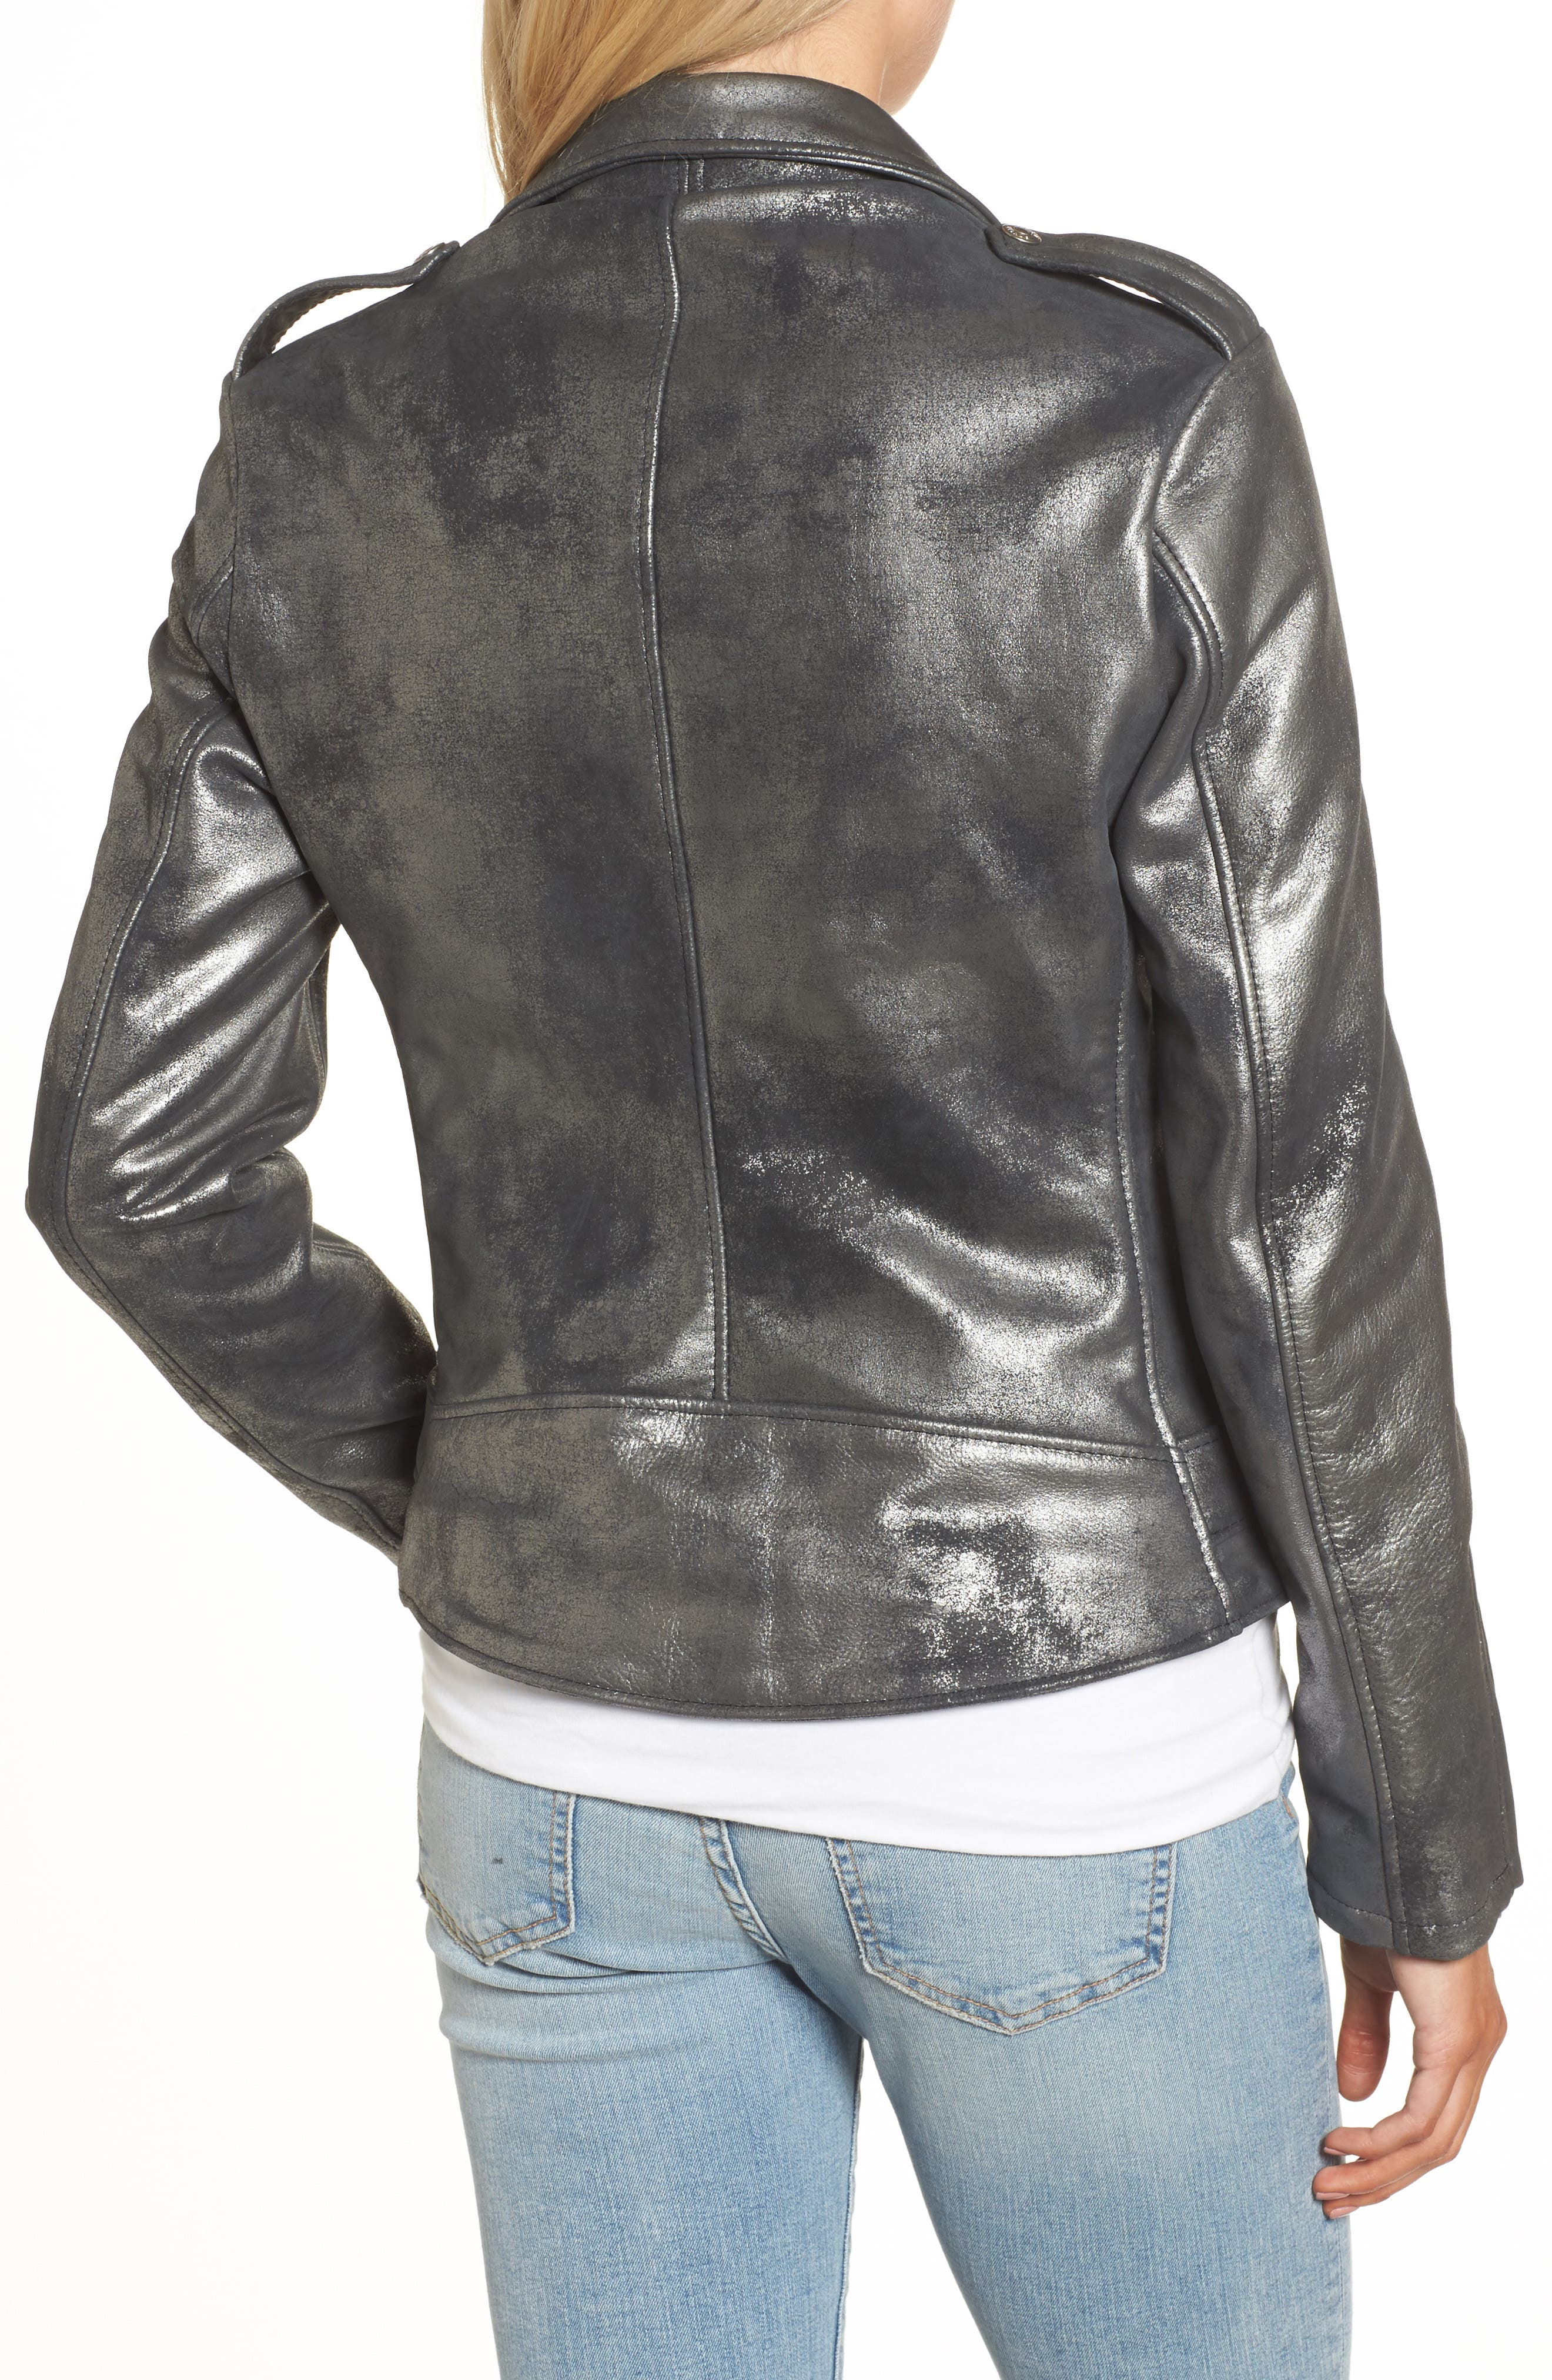 Perfecto Distressed Leather Boyfriend Jacket,                             Alternate thumbnail 4, color,